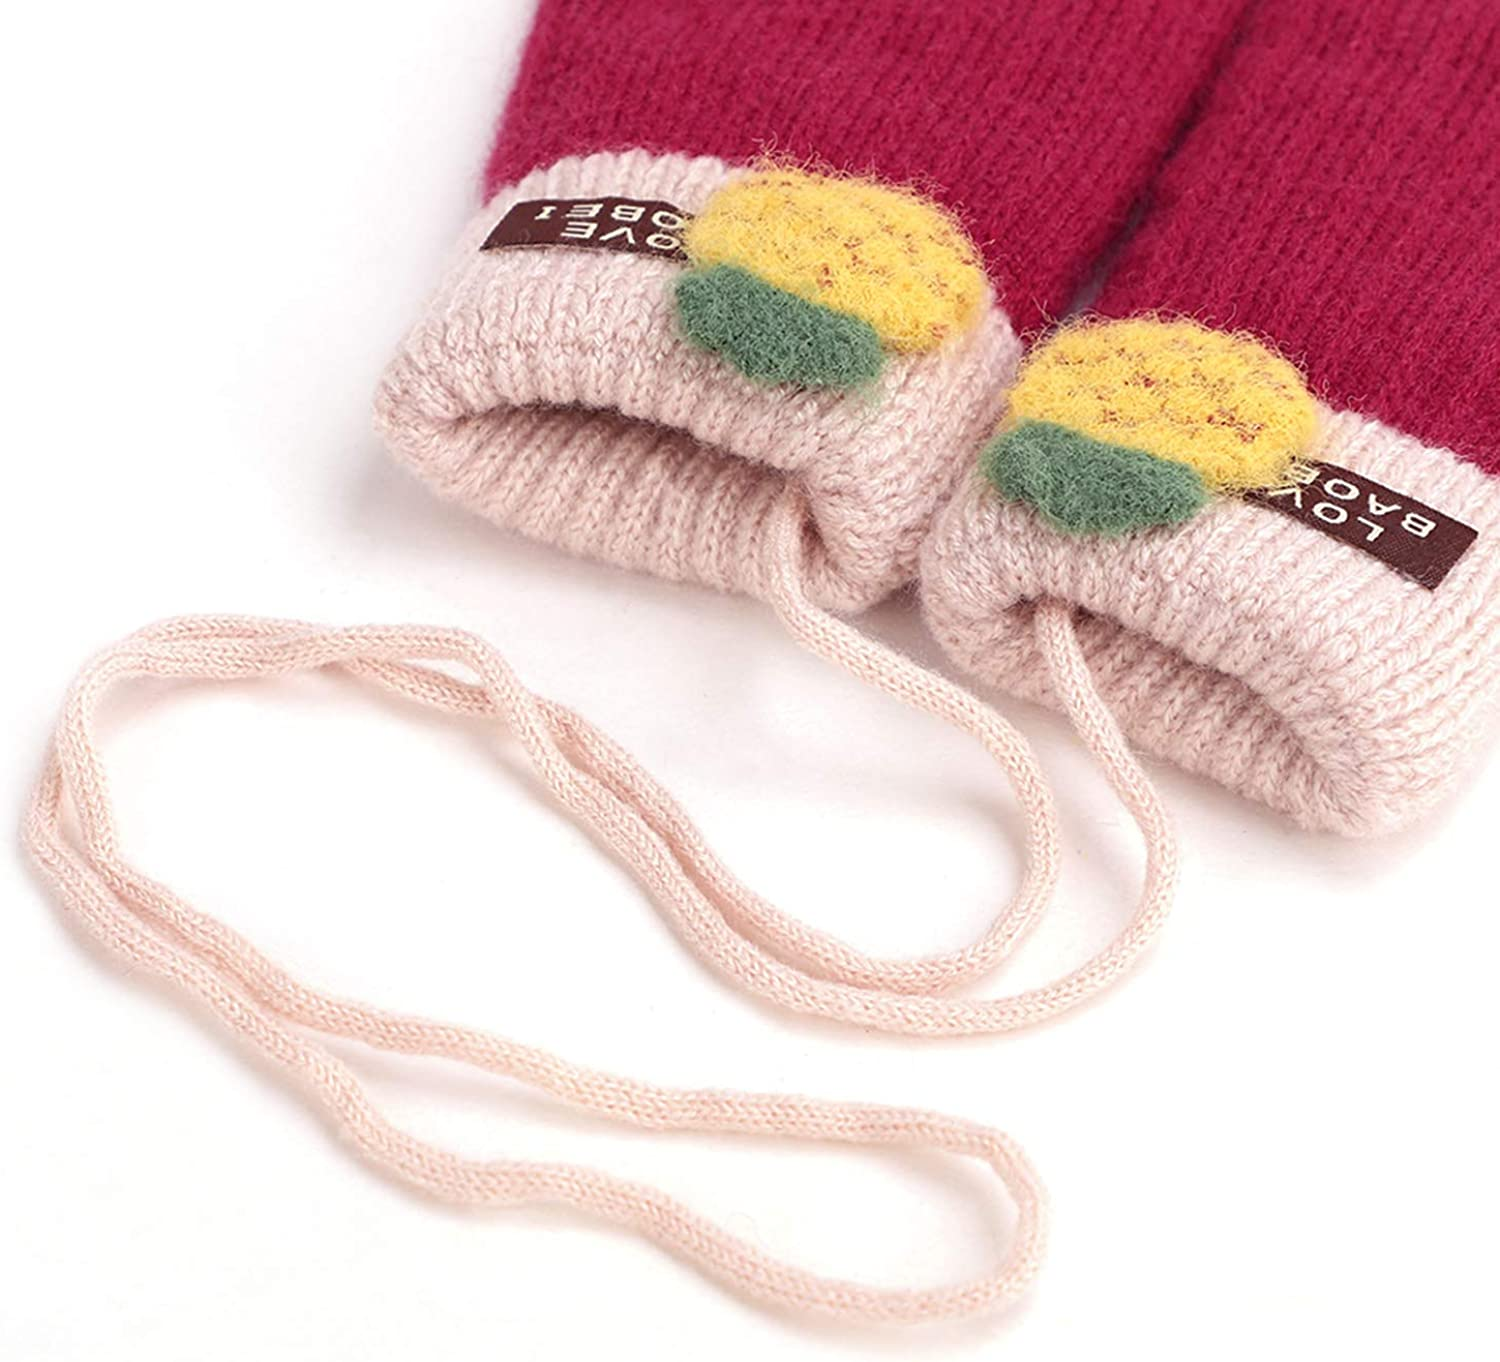 Unisex Kids Winter Knitted Warm Gloves Mittens Thick Plush Lined Thermal Full-finger Wrist Mittens Hand Warmer with Hanging Neck Anti-Lost String for 2-5 Years Old Christmas Gift